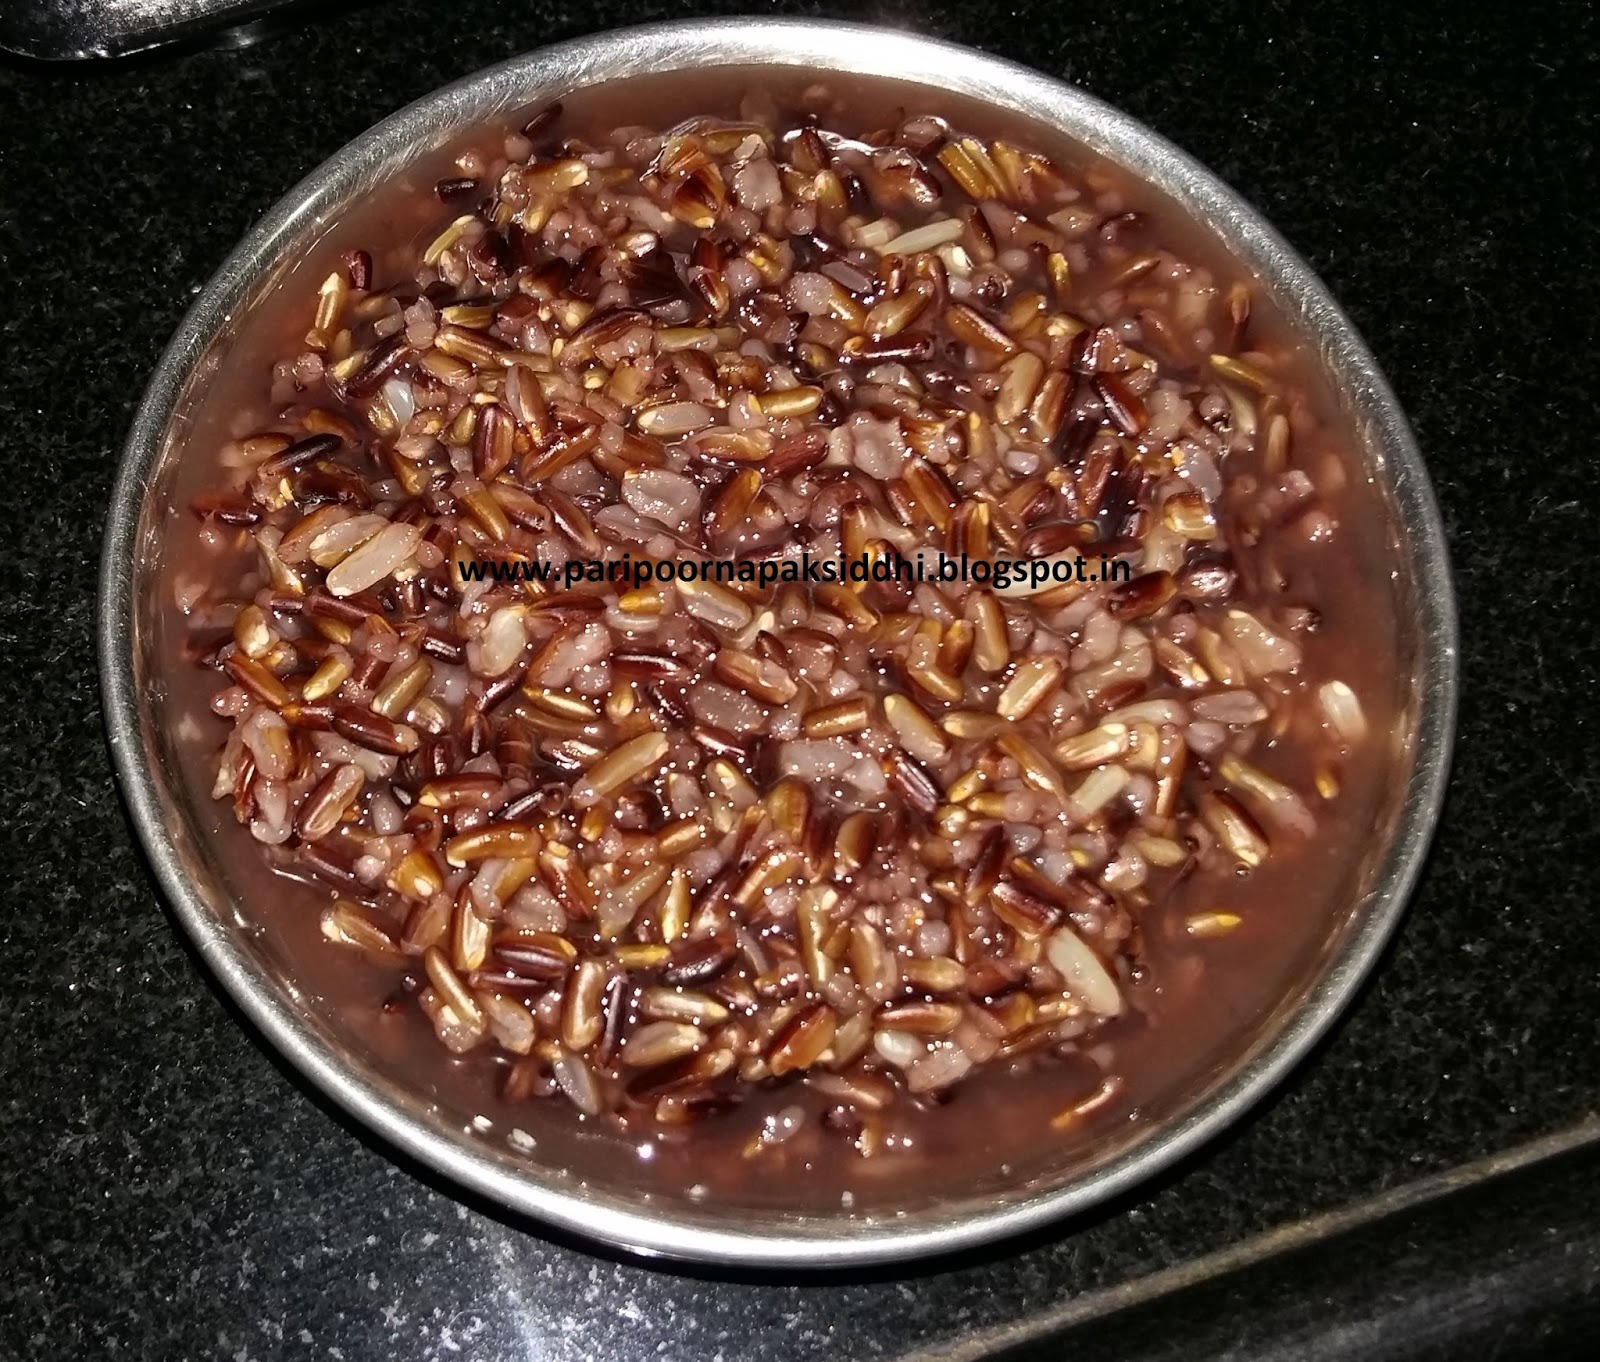 Paripoorna paksiddhi manipuri black rice kheer it takes quiet a long time to cook so make sure you give 3 4 pressure cooker whistles more than what you would usually give for cooking rice ccuart Gallery